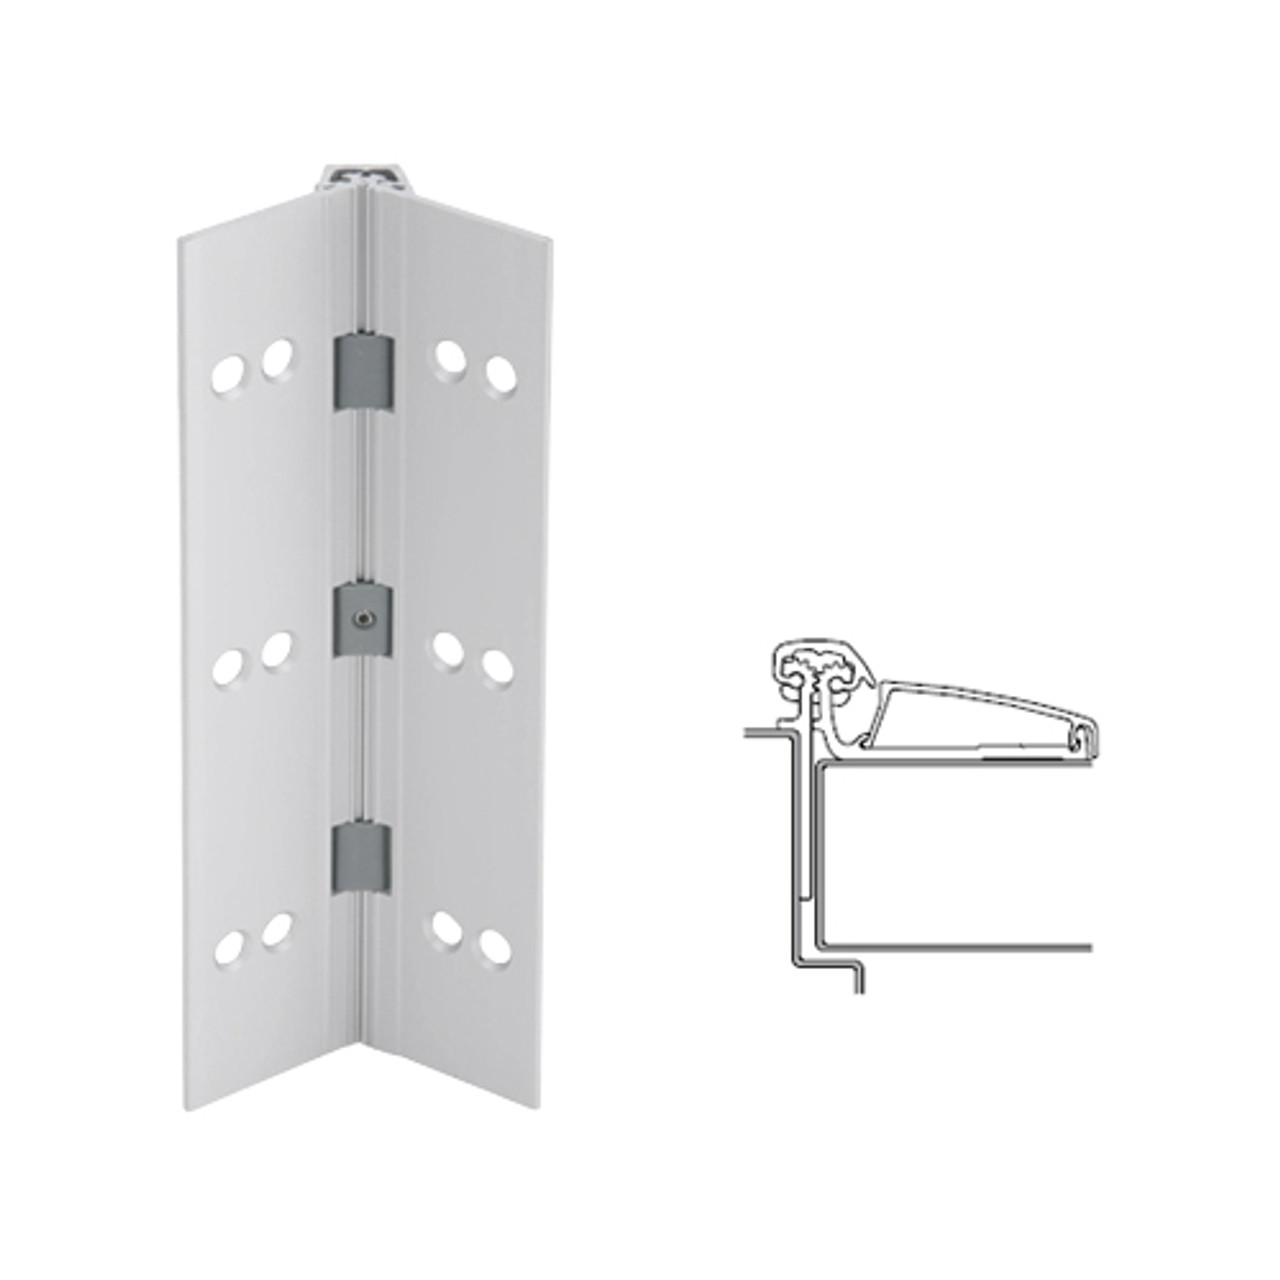 045XY-US28-95-SECWDHM IVES Adjustable Half Surface Continuous Geared Hinges with Security Screws - Hex Pin Drive in Satin Aluminum